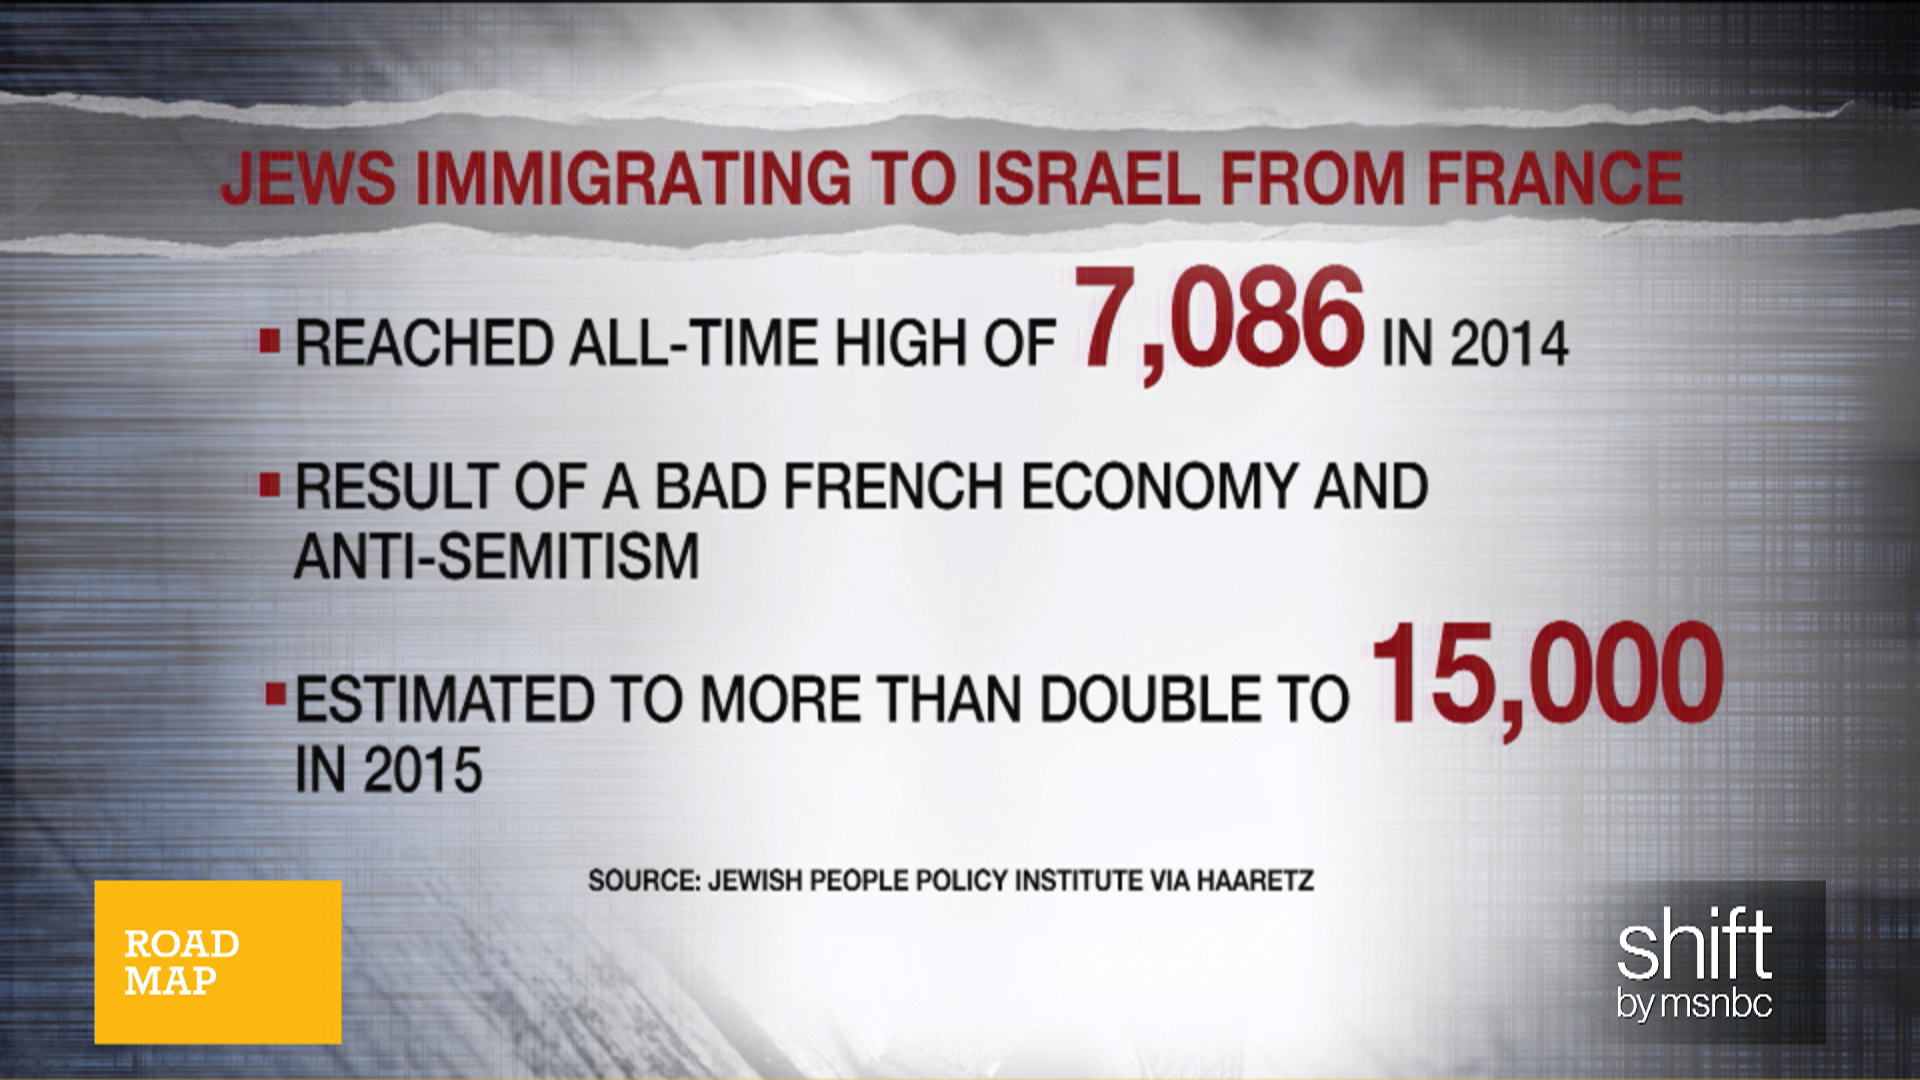 Jewish emigration to Israel on the rise